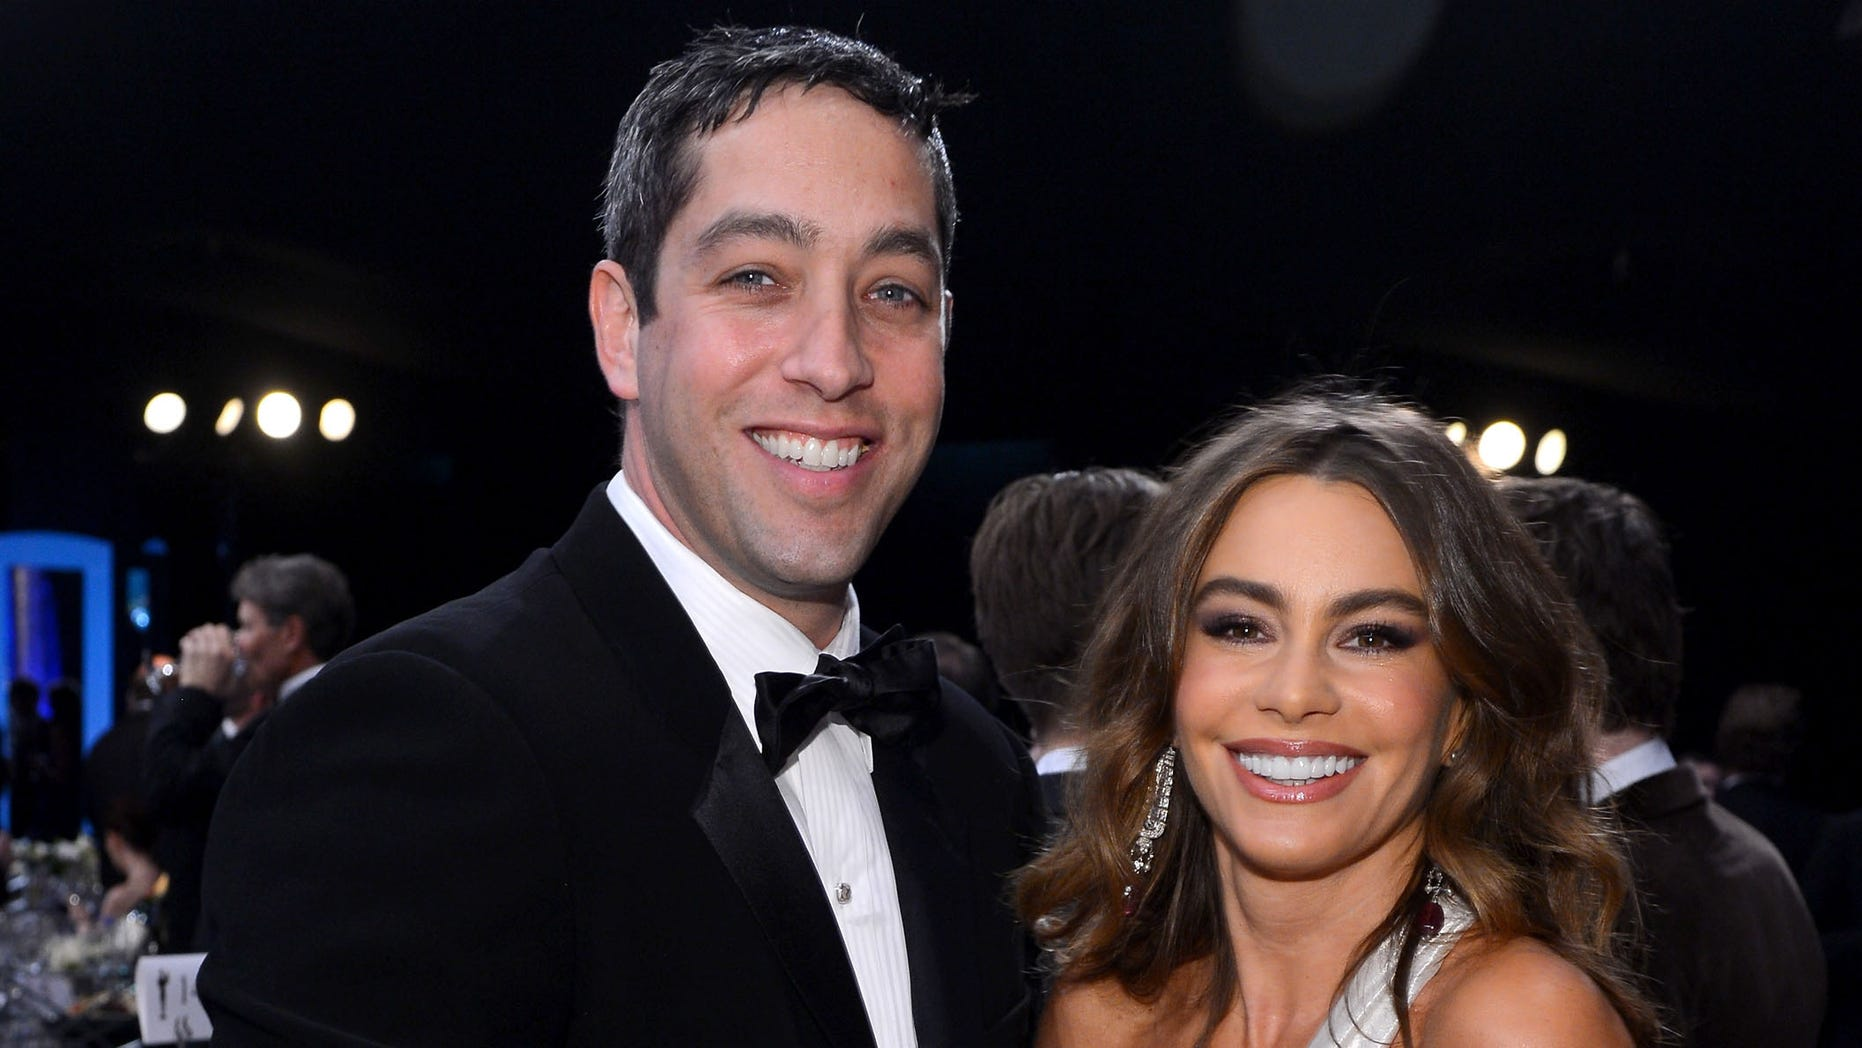 LOS ANGELES, CA - JANUARY 27:  Actress Sofia Vergara (R) and Nick Loeb attend the 19th Annual Screen Actors Guild Awards held at The Shrine Auditorium on January 27, 2013 in Los Angeles, California.  (Photo by Mark Davis/Getty Images)